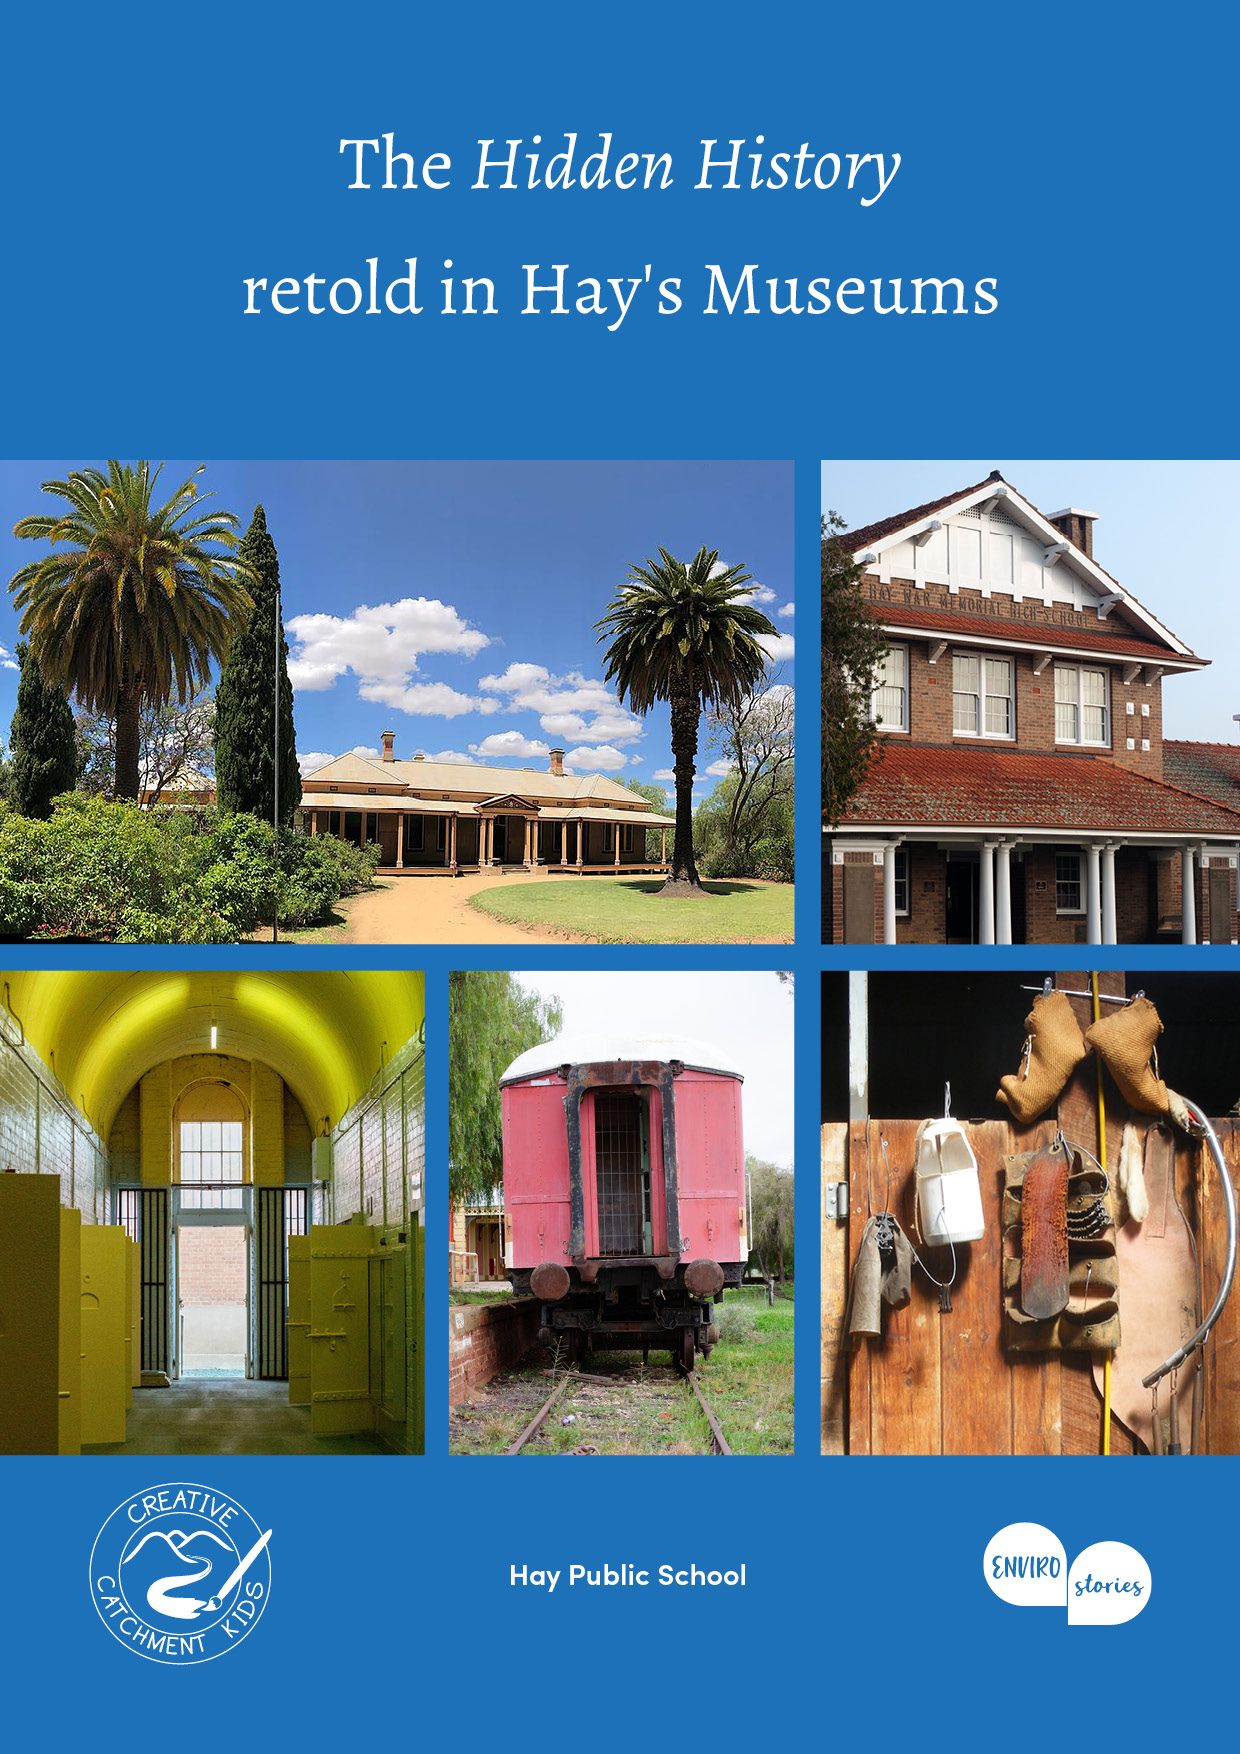 The Hidden History retold in Hay's Museums